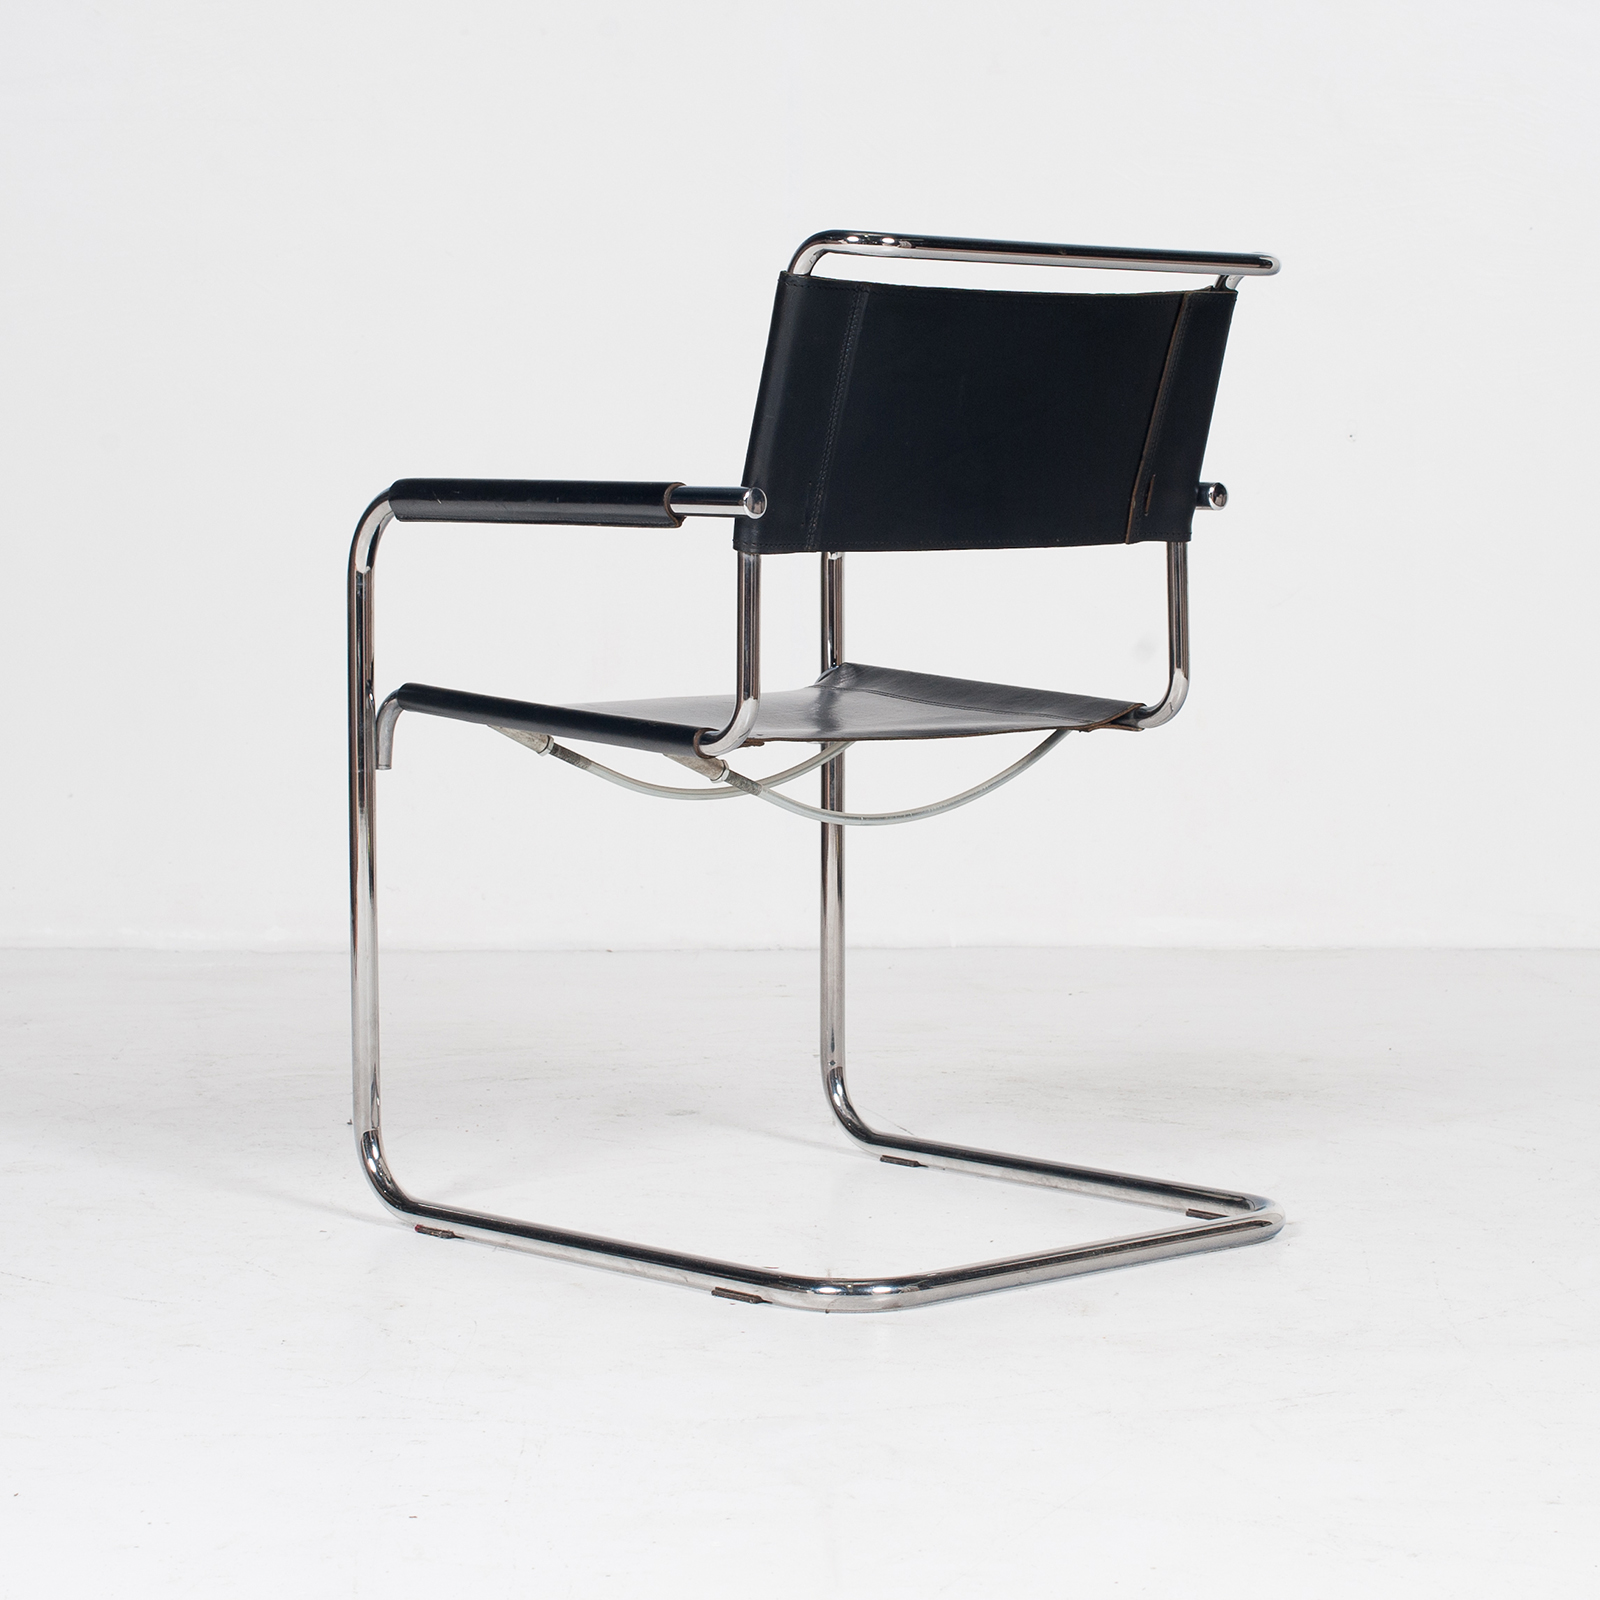 Set Of Four Cantilever Dining Chairs In Black Leather And Chrome By Mart Stam For Thonet, 1970s, The Netherlands 403